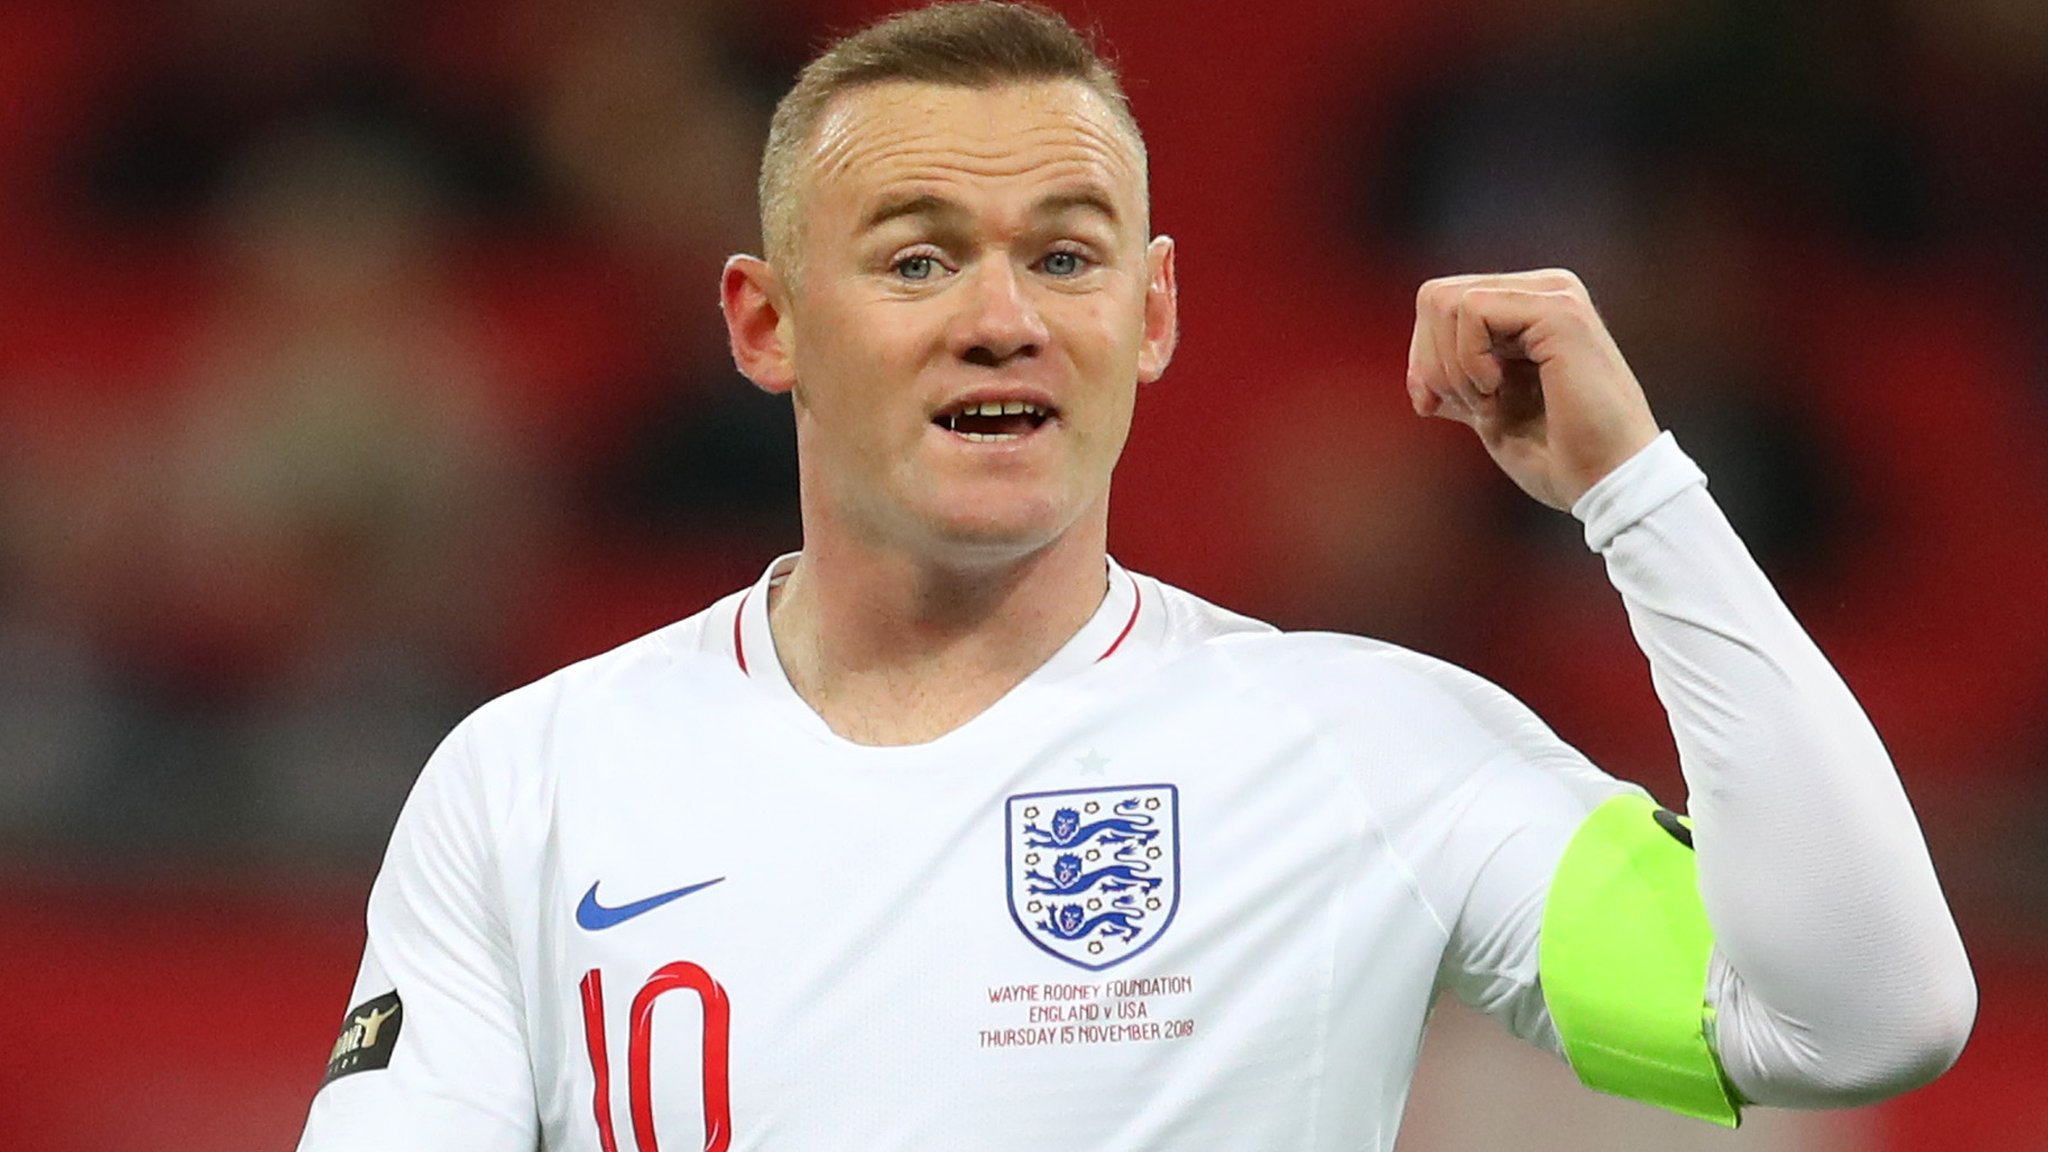 England 3-0 USA: Wayne Rooney farewell appearance ends in victory